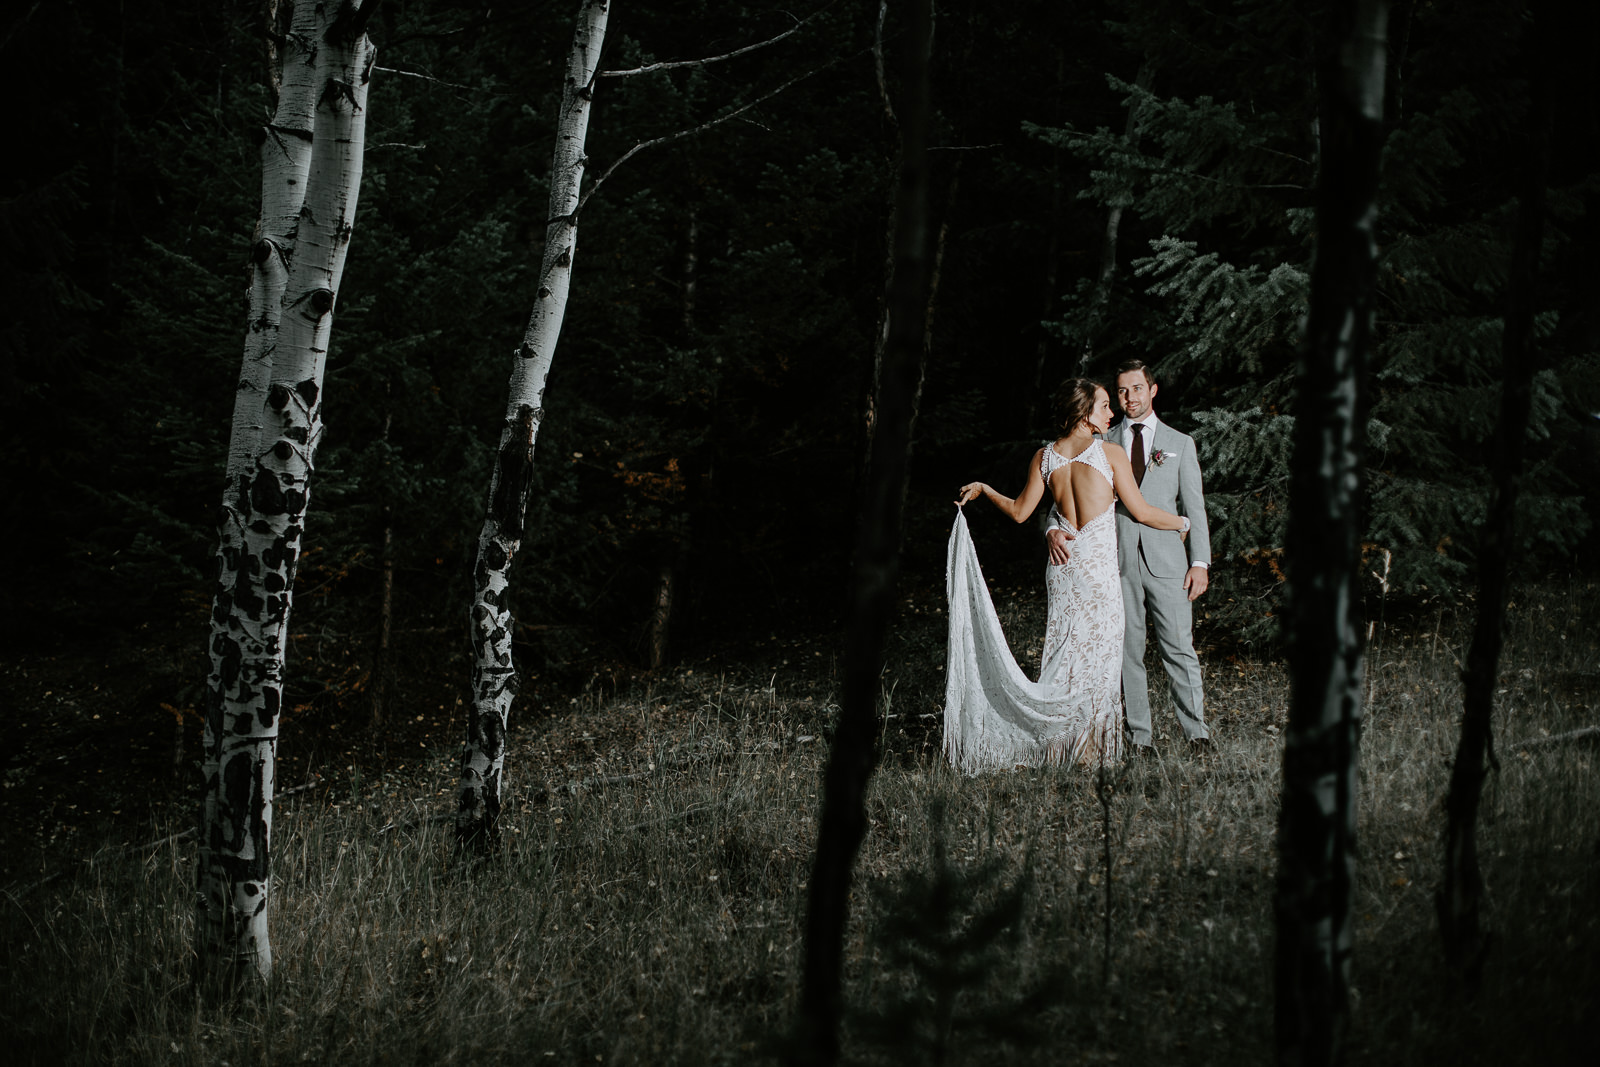 Bride holding white dress with groom illuminated amongst darkness and aspens